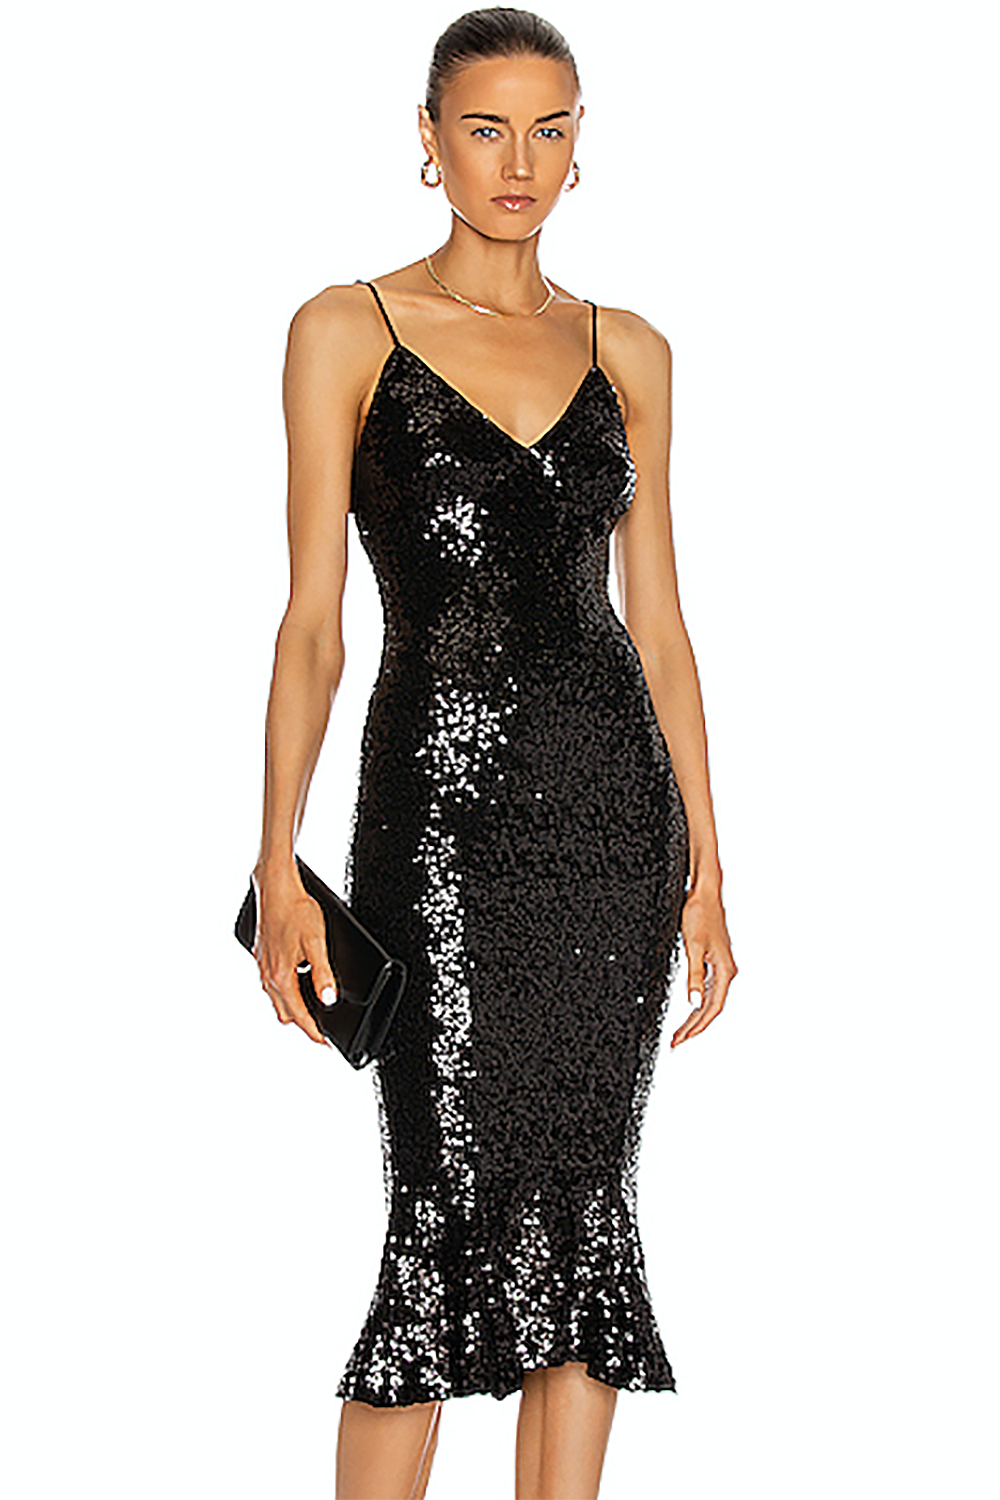 Black Sequins Strappy Ruffle Dress